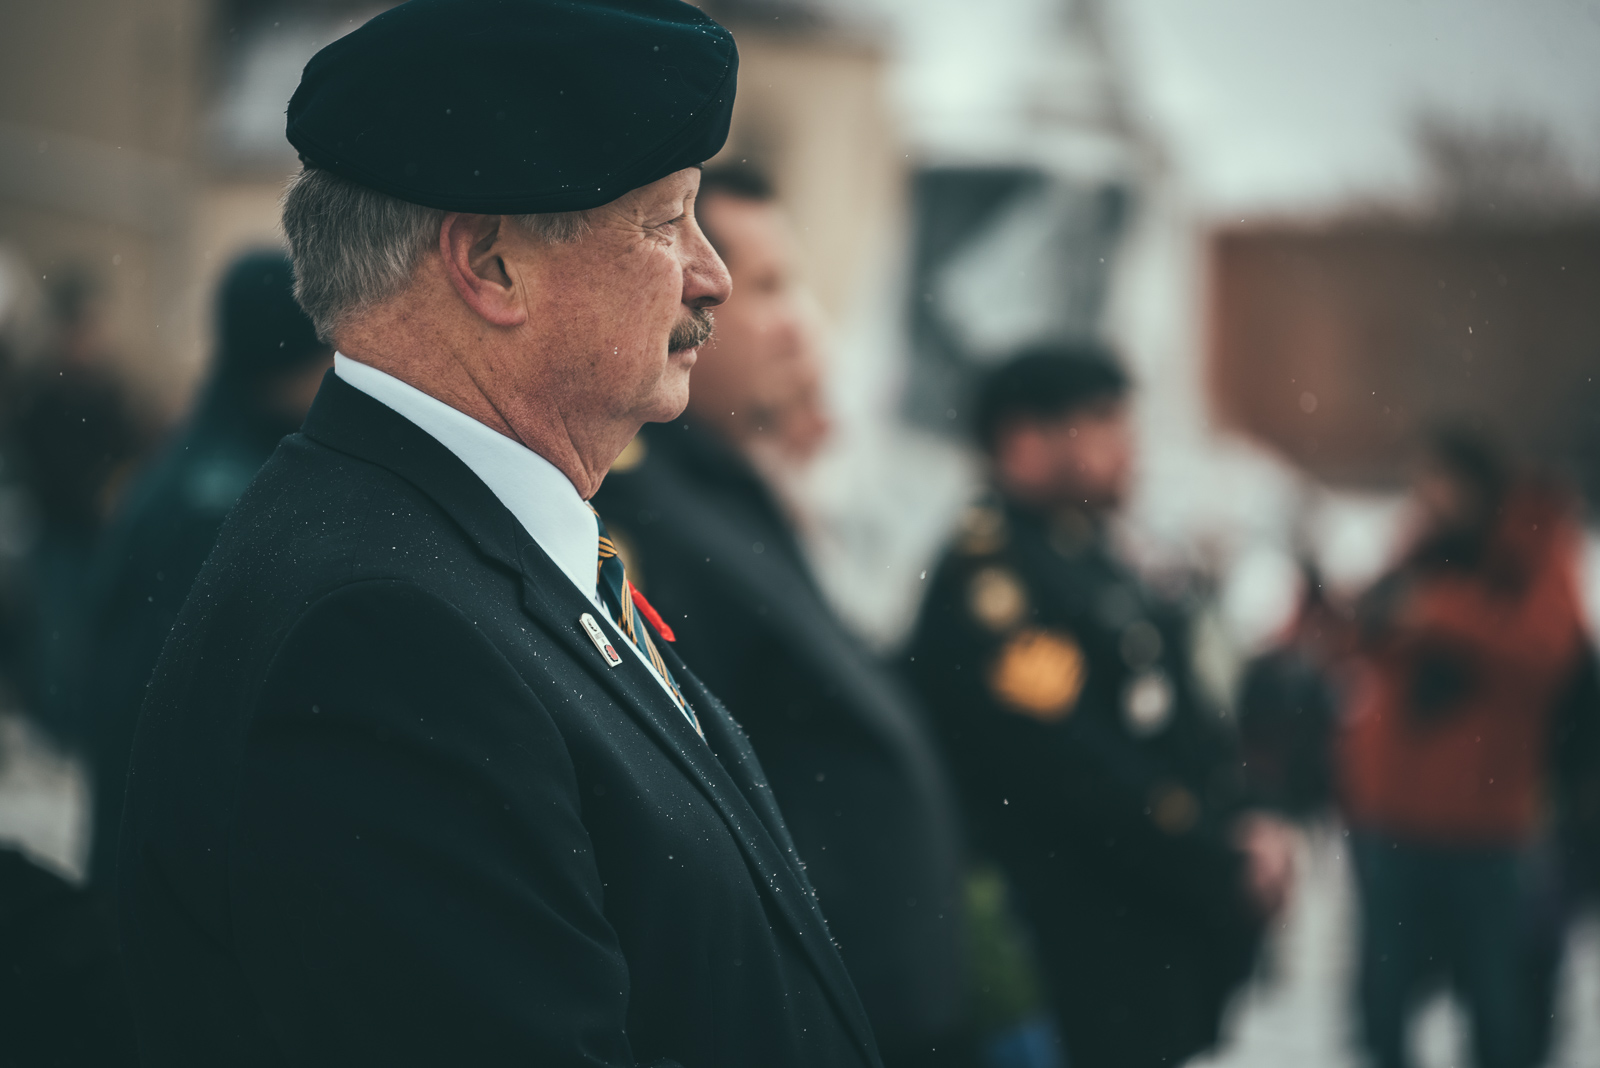 remembrance-day-2018-blog-39.jpg